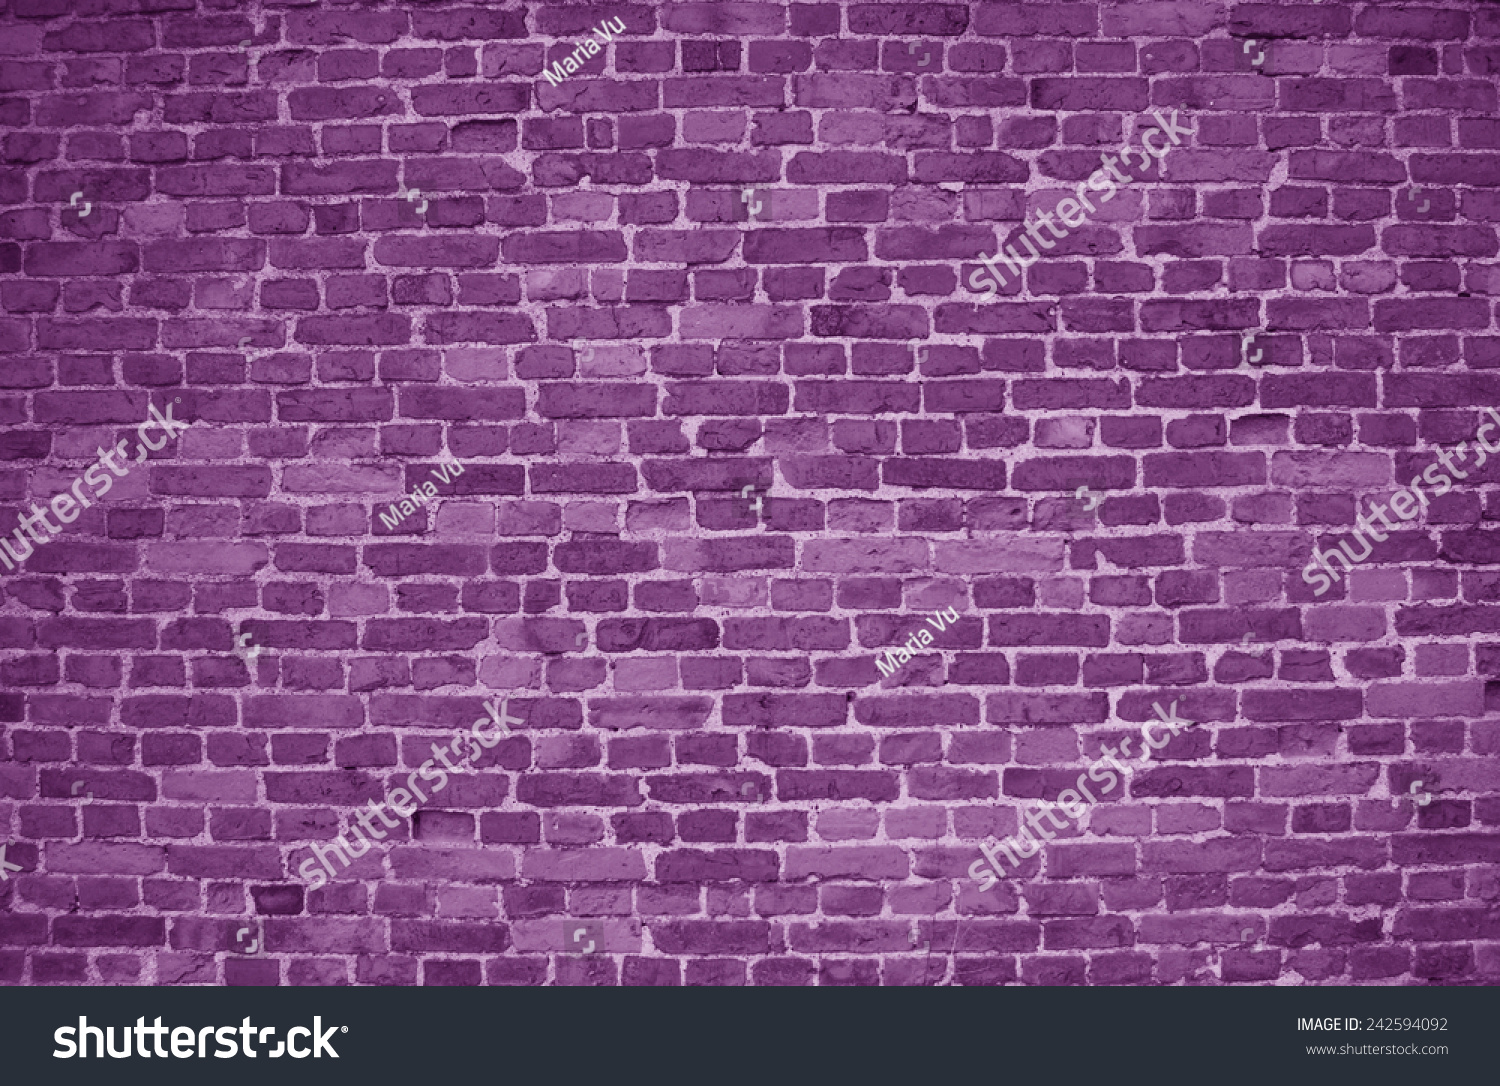 Purple brick wall background wallpaper bricks stock for Purple brick wallpaper